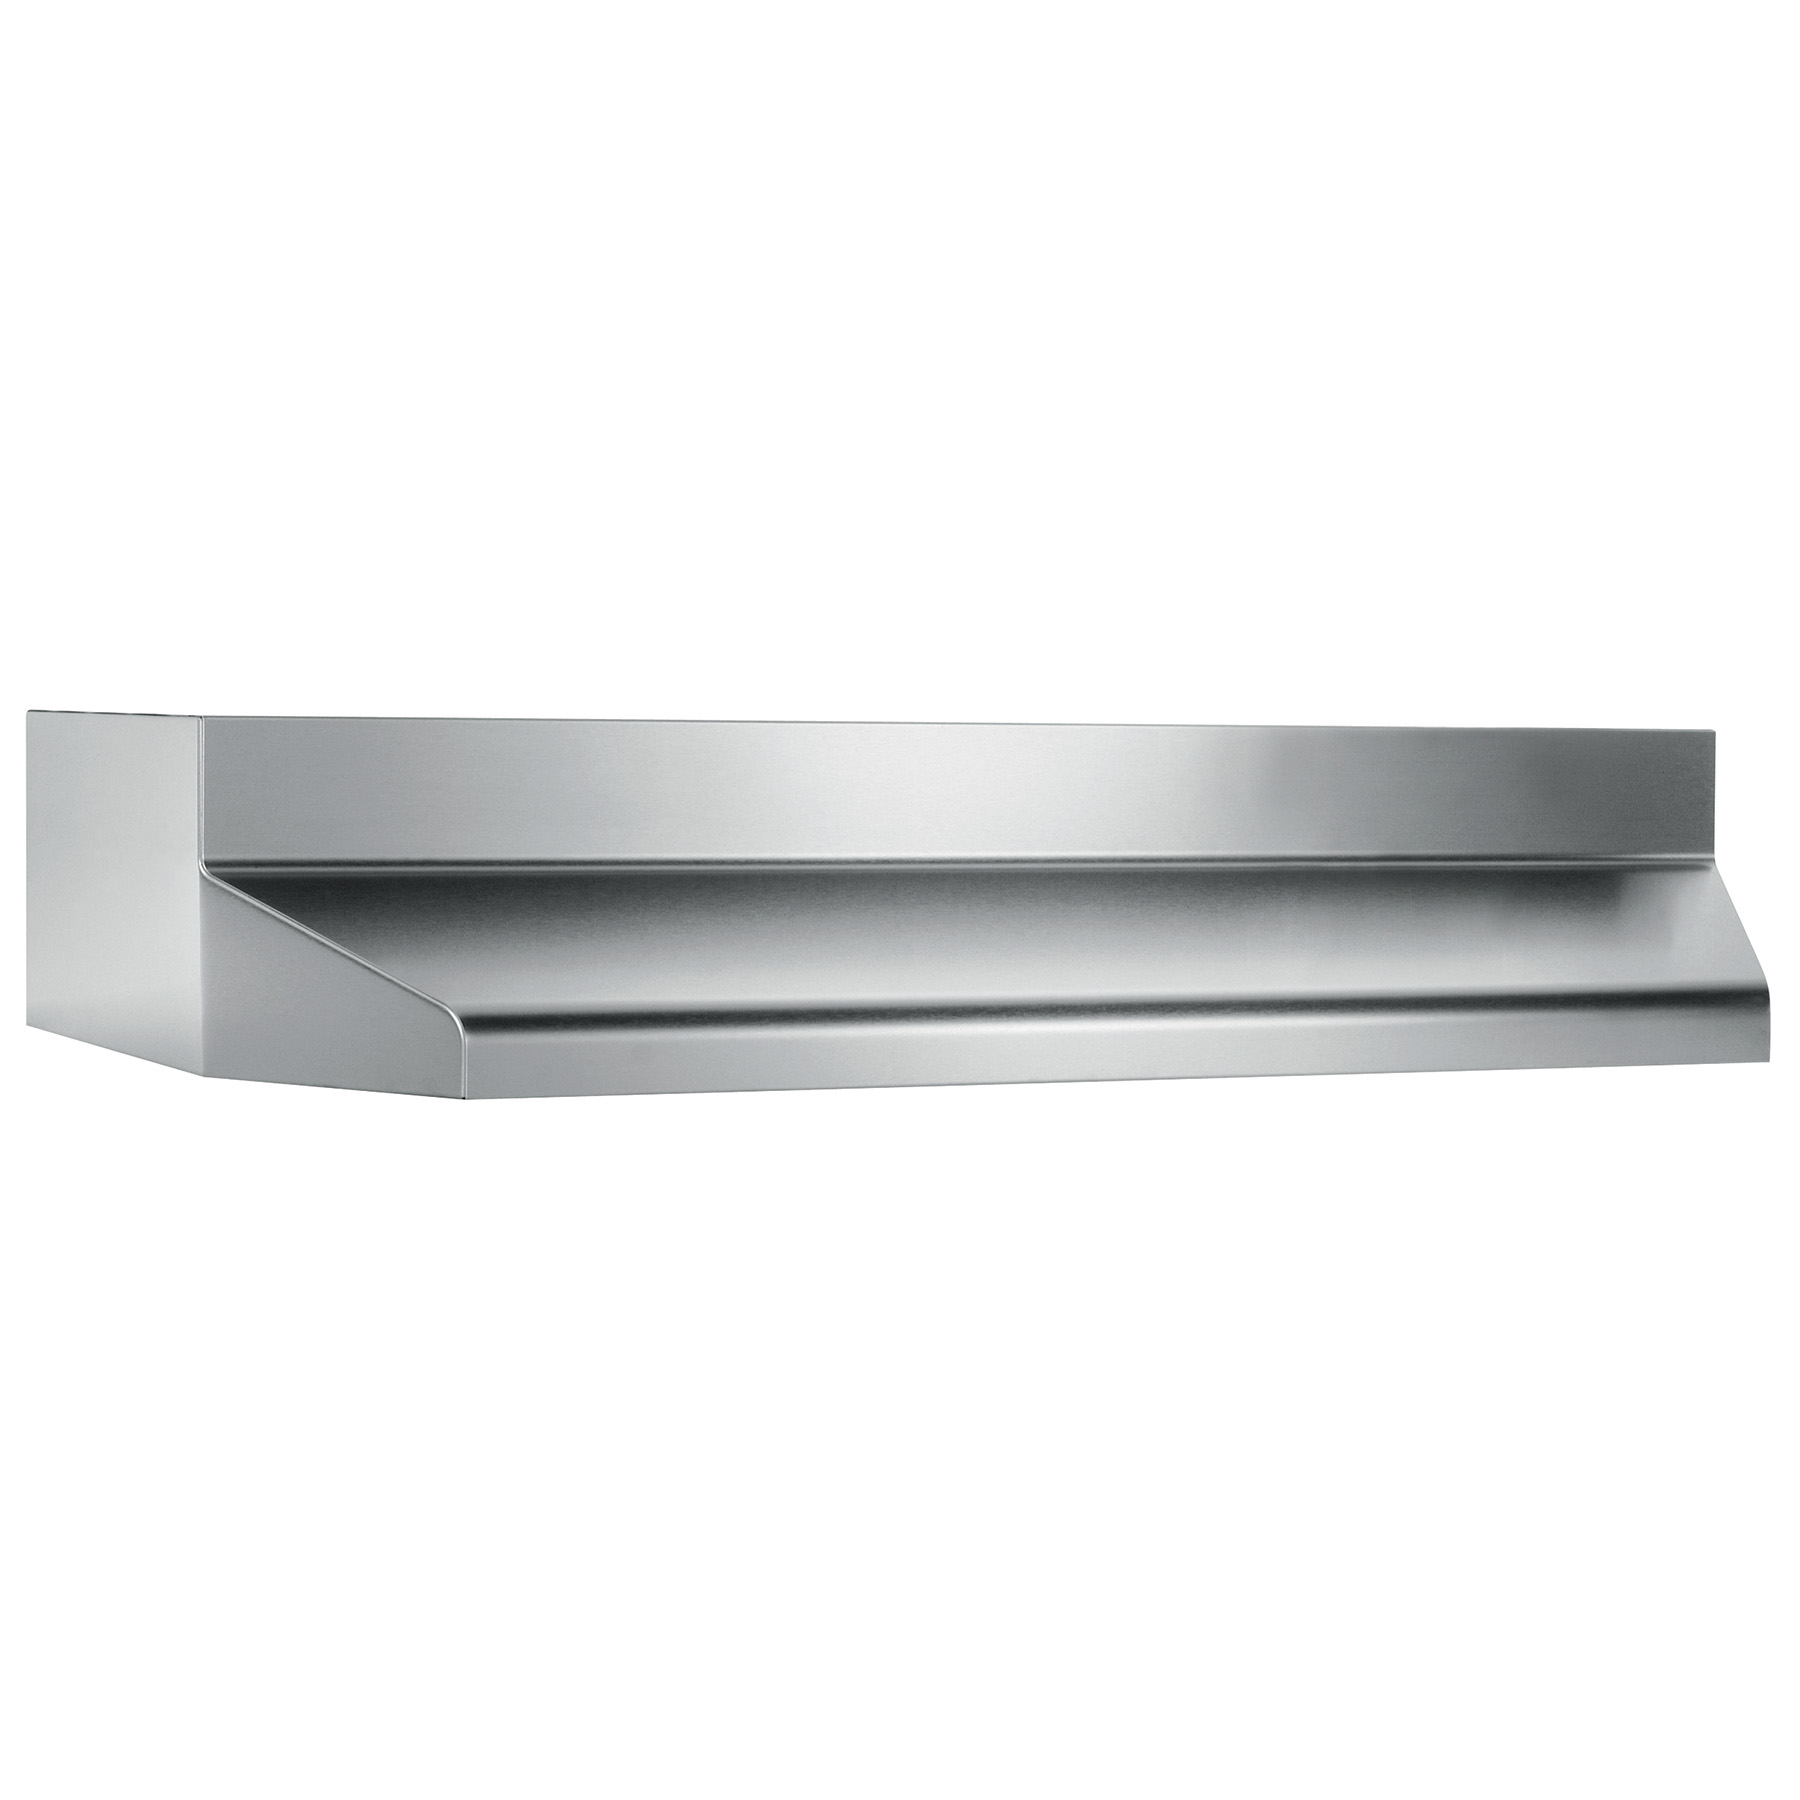 37000 Series 30-Inch Range Hood Shell in Stainless Steel